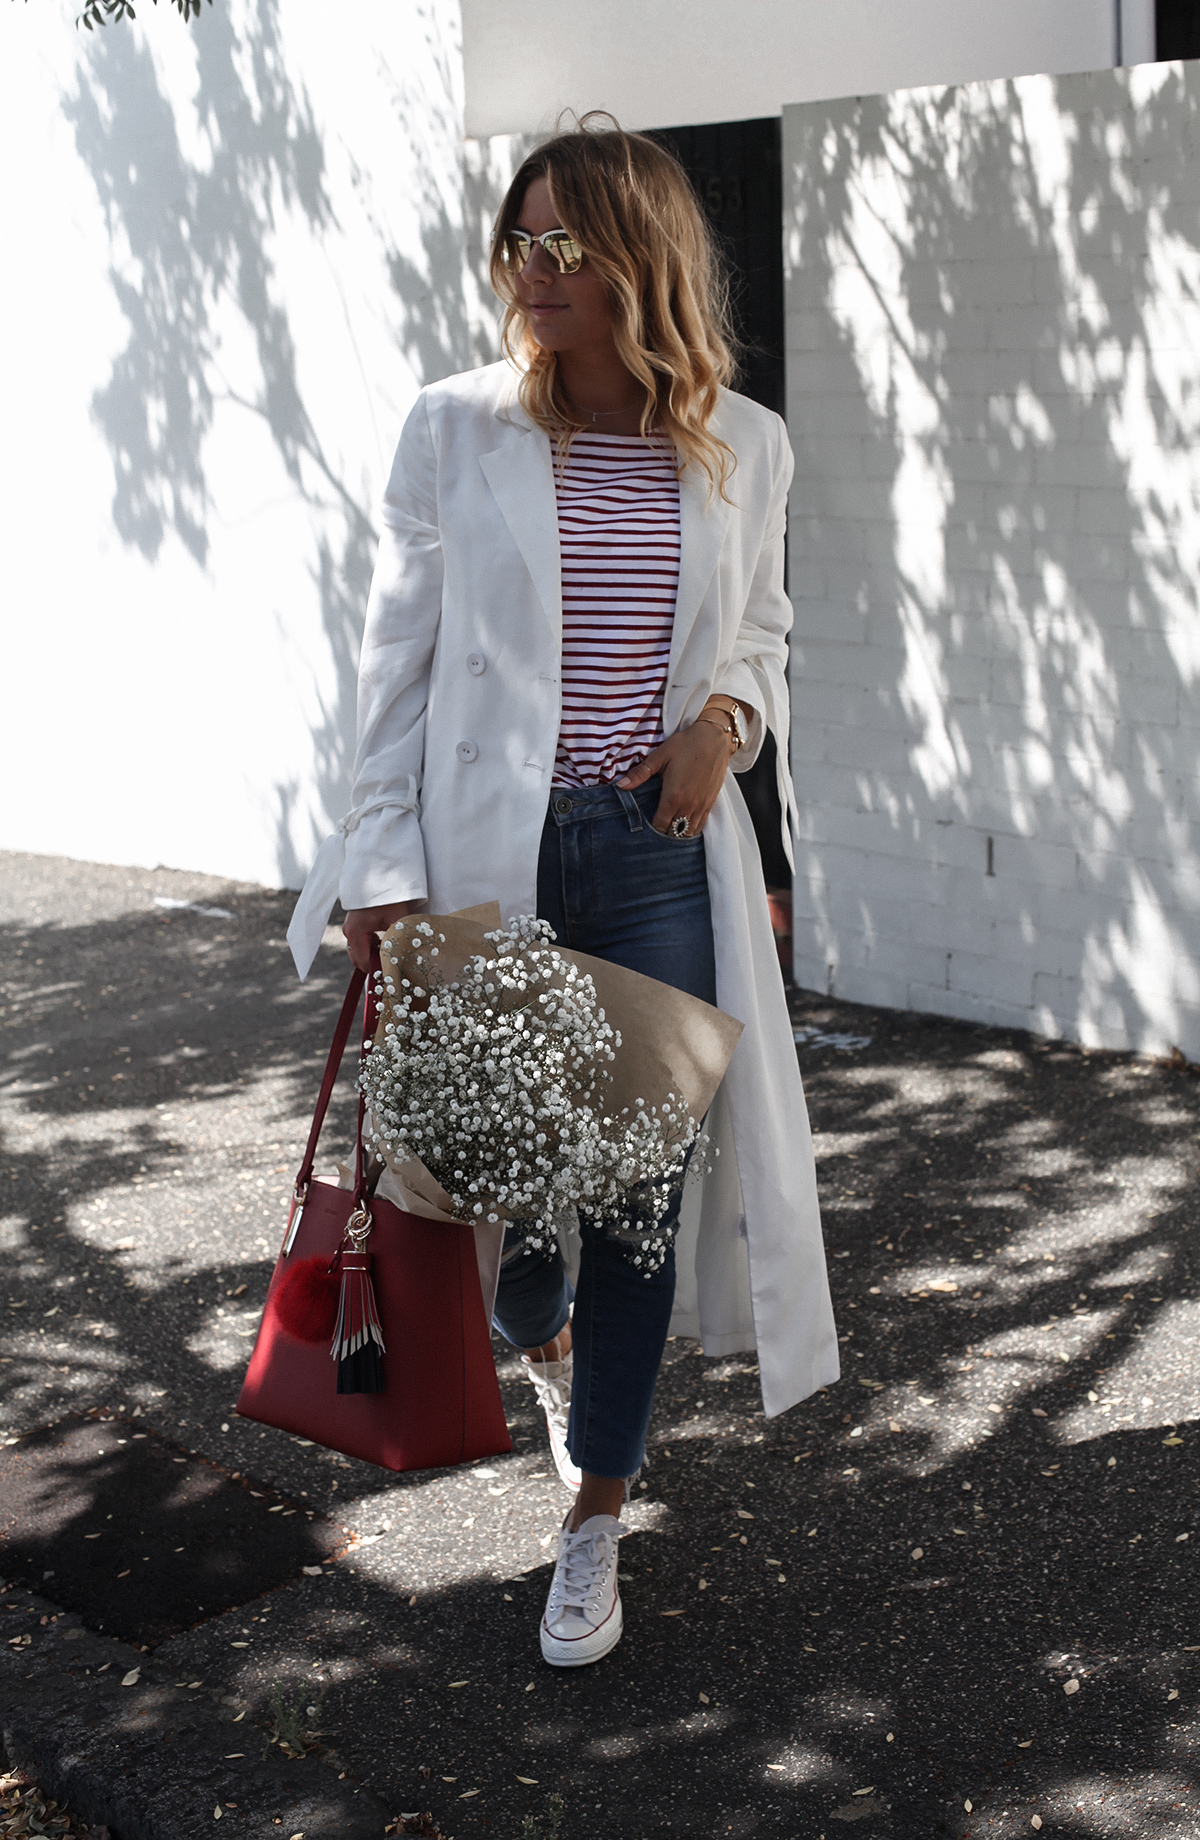 See Want Shop blogger Lisa Hamilton styling a red tote bag with a white trench coat & ripped jeans